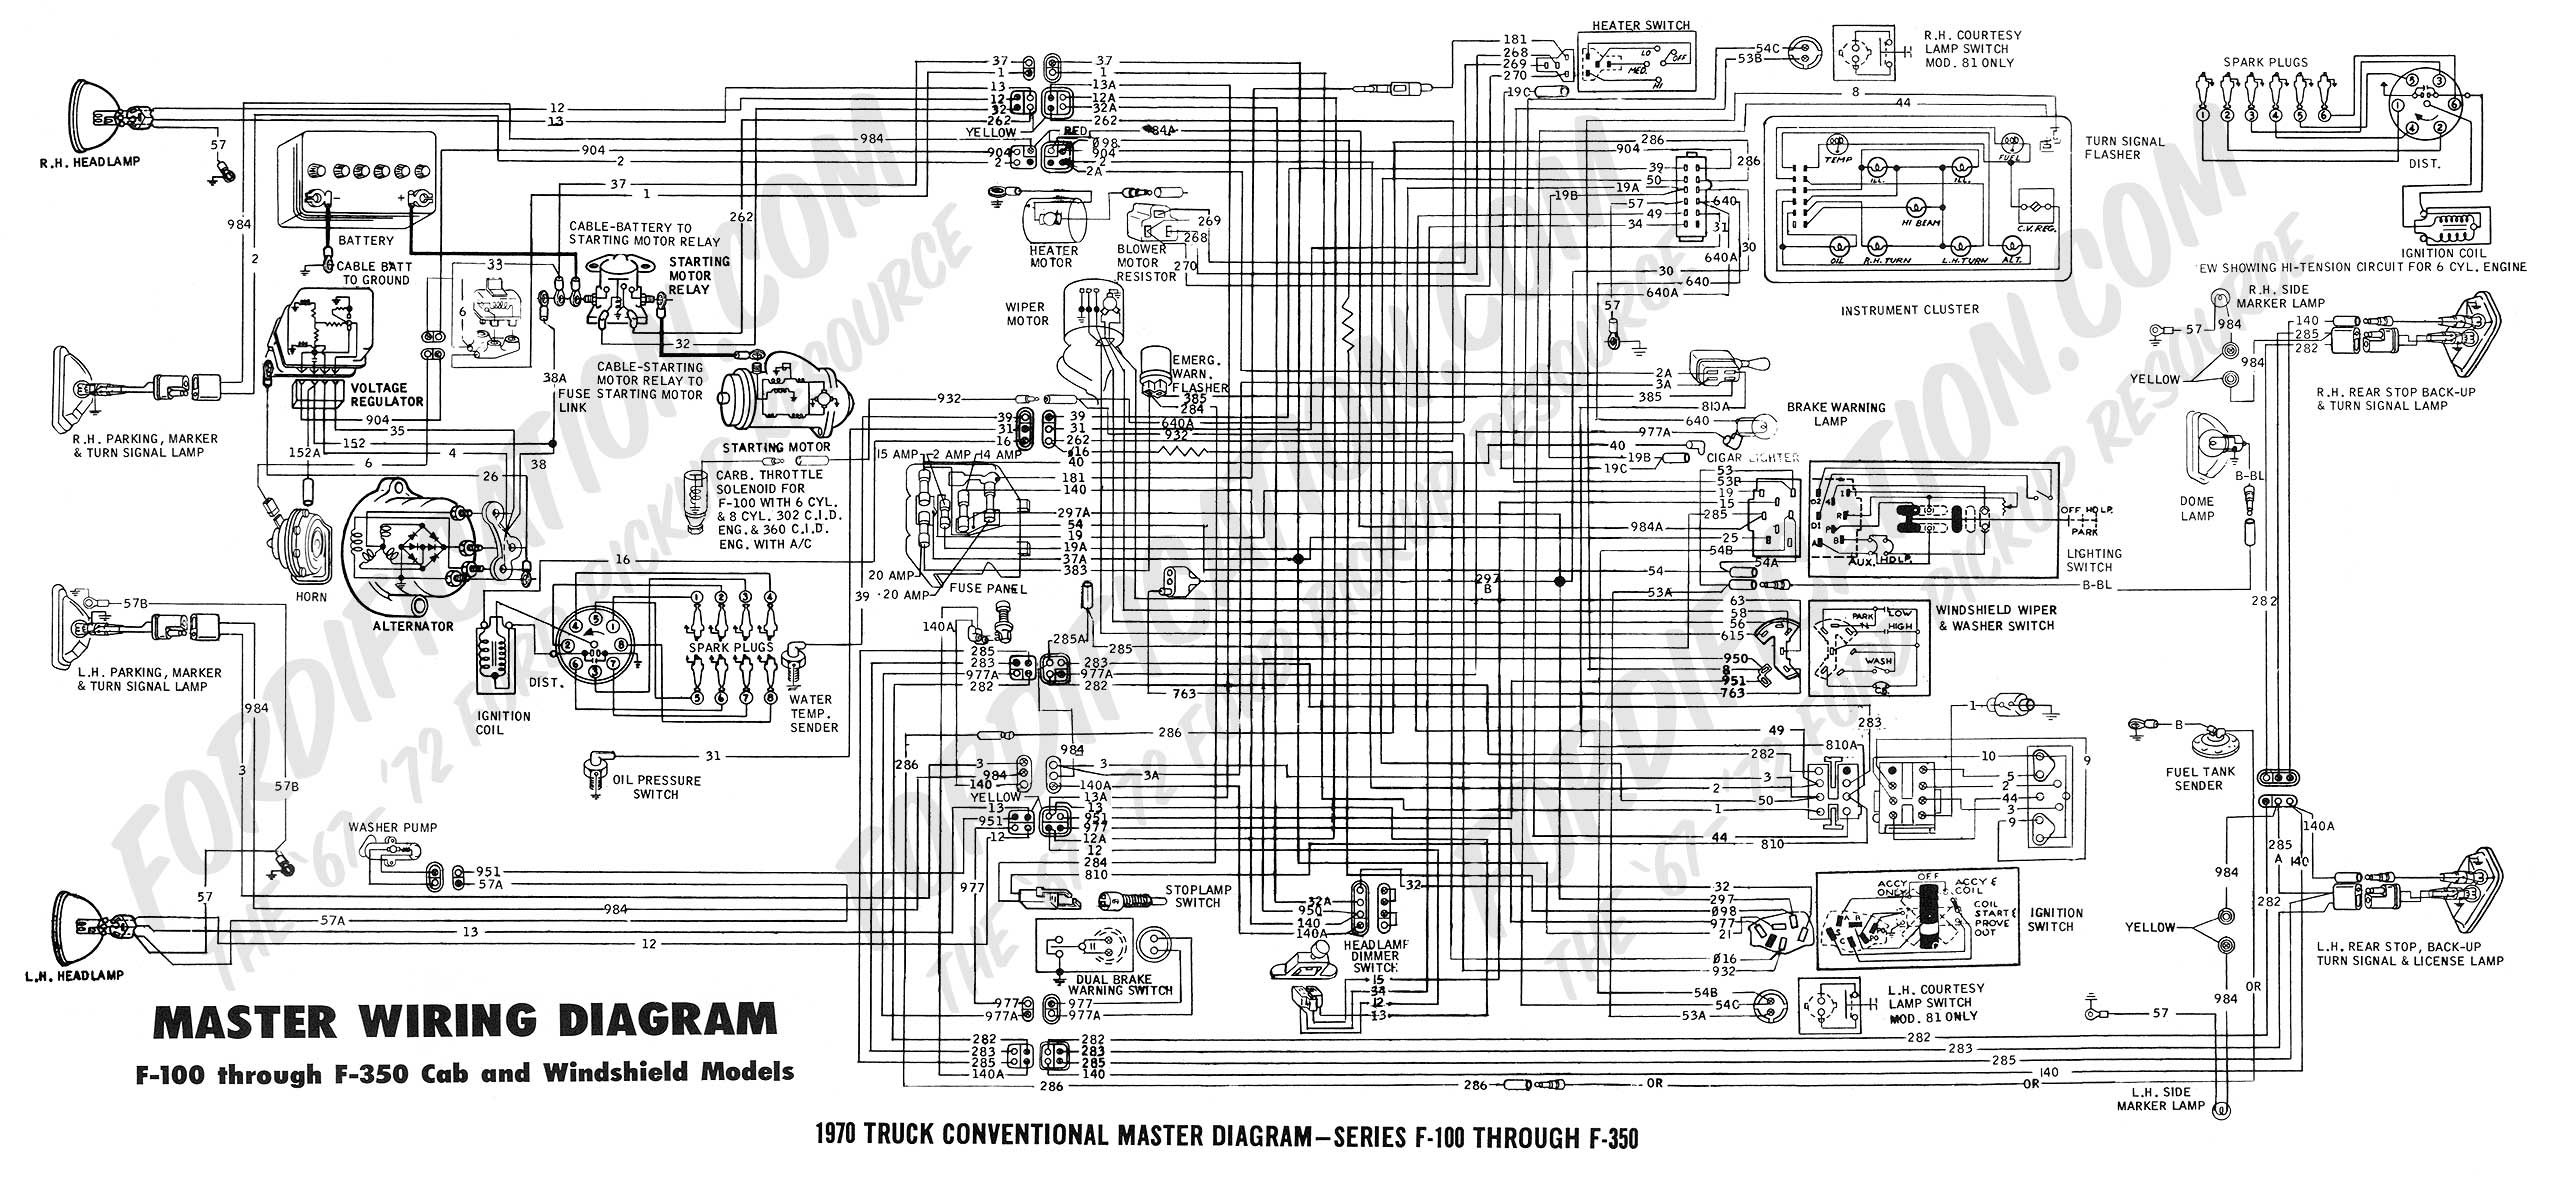 2006 ford wiring diagram electrical wiring diagram guide 2006 Hyundai Santa Fe Wiring Diagram